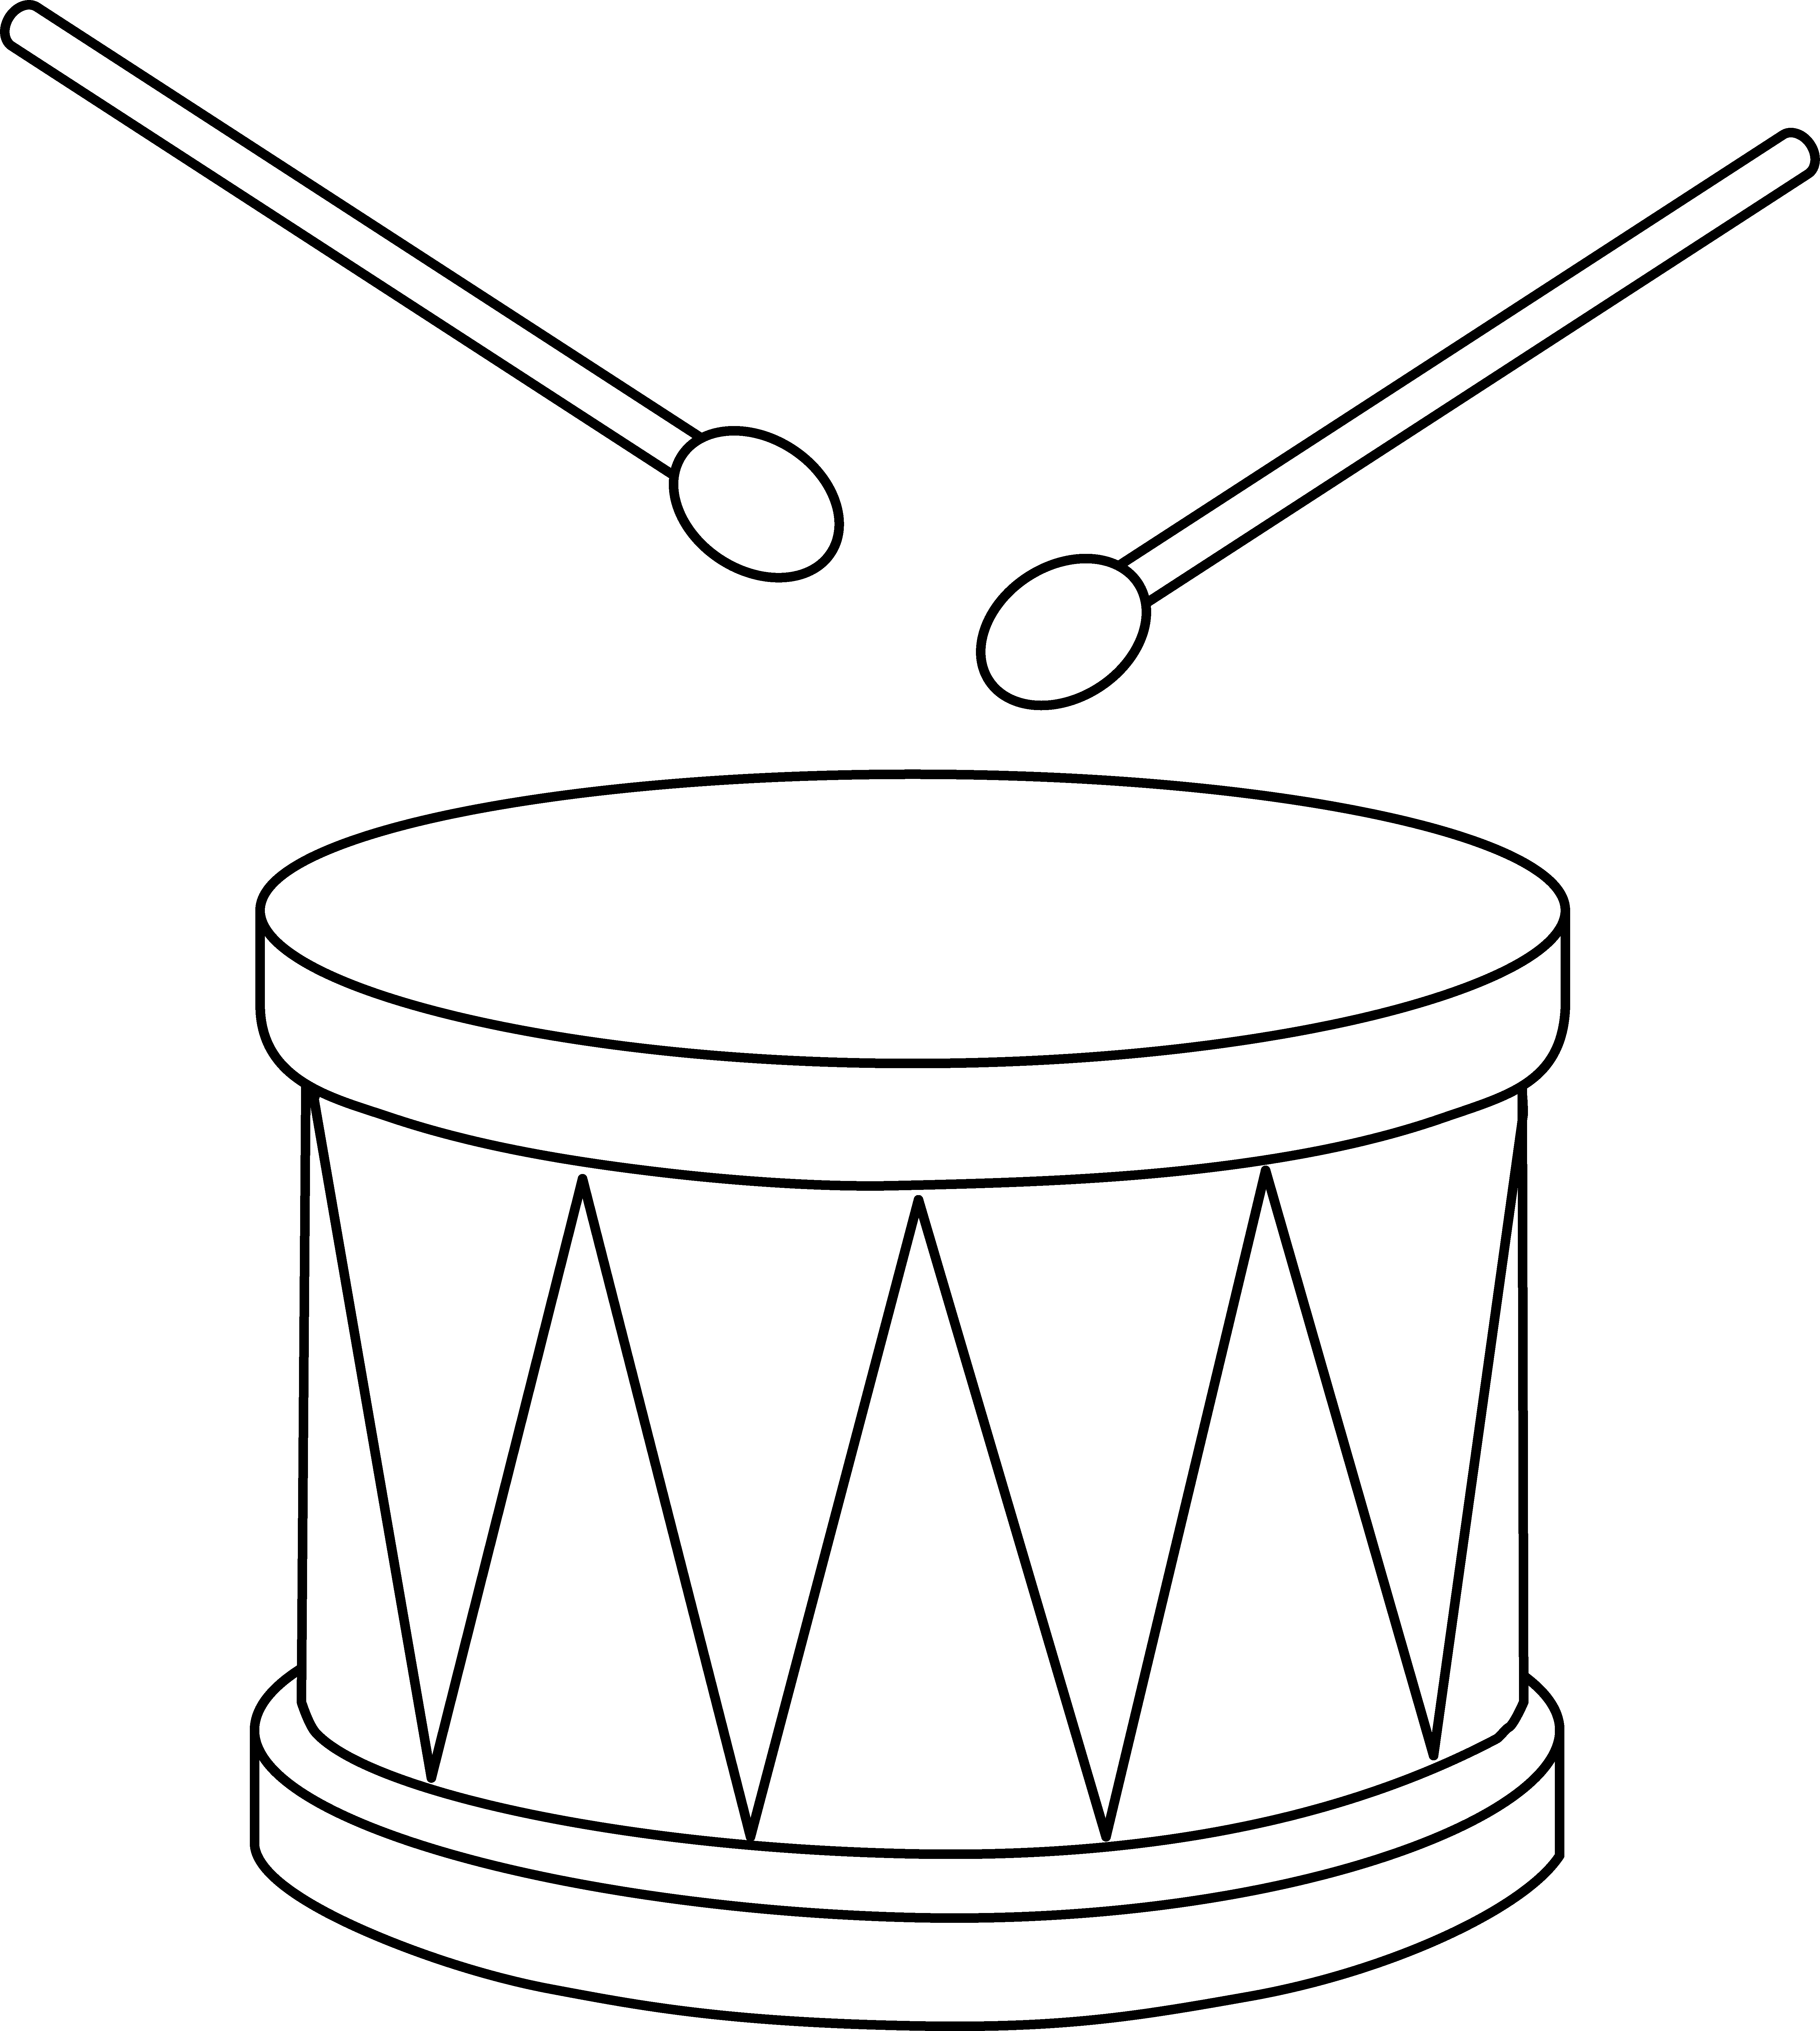 Musical instruments black and. Drum clipart toy drum